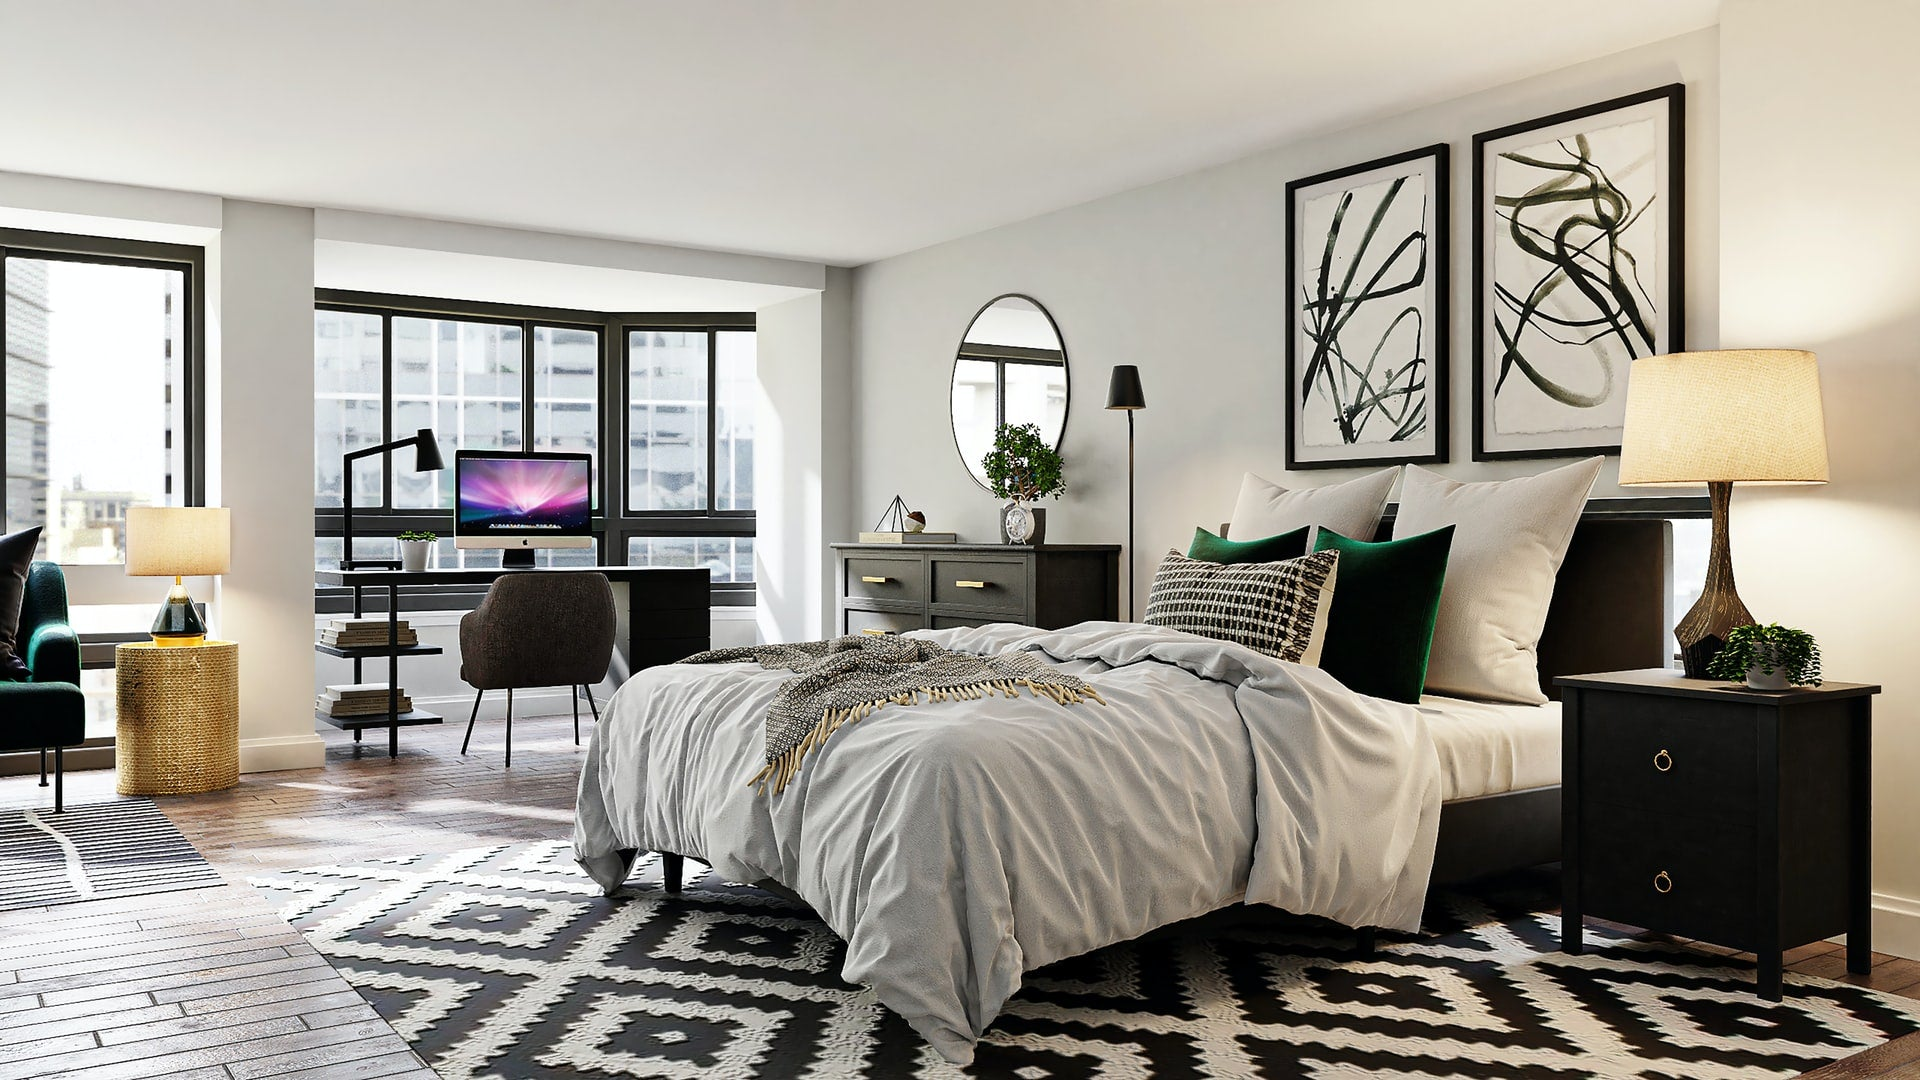 Why is wall art so important in interior design